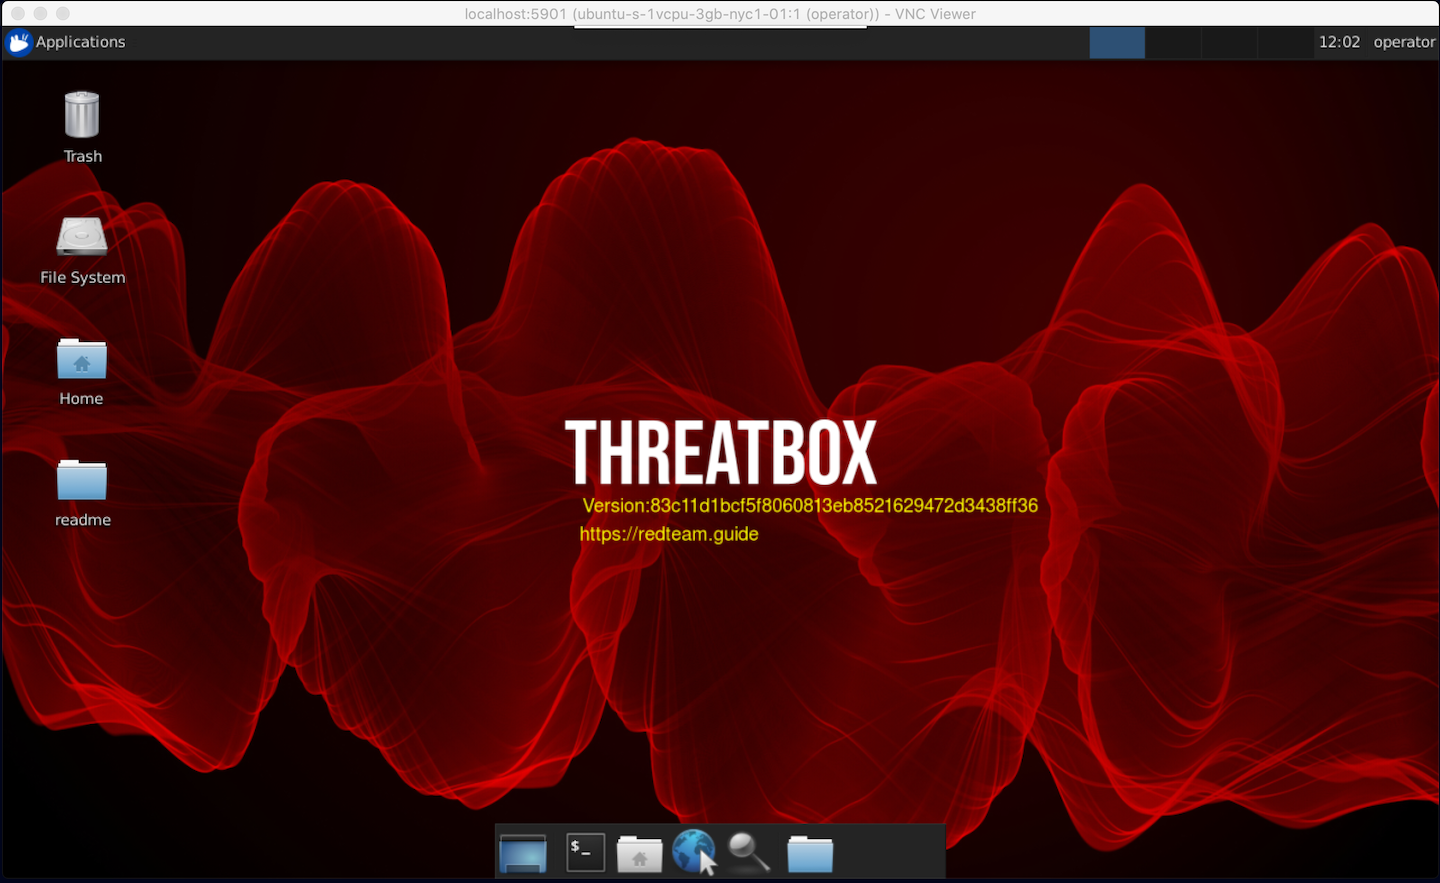 threatbox: standard and controlled Linux based attack platform